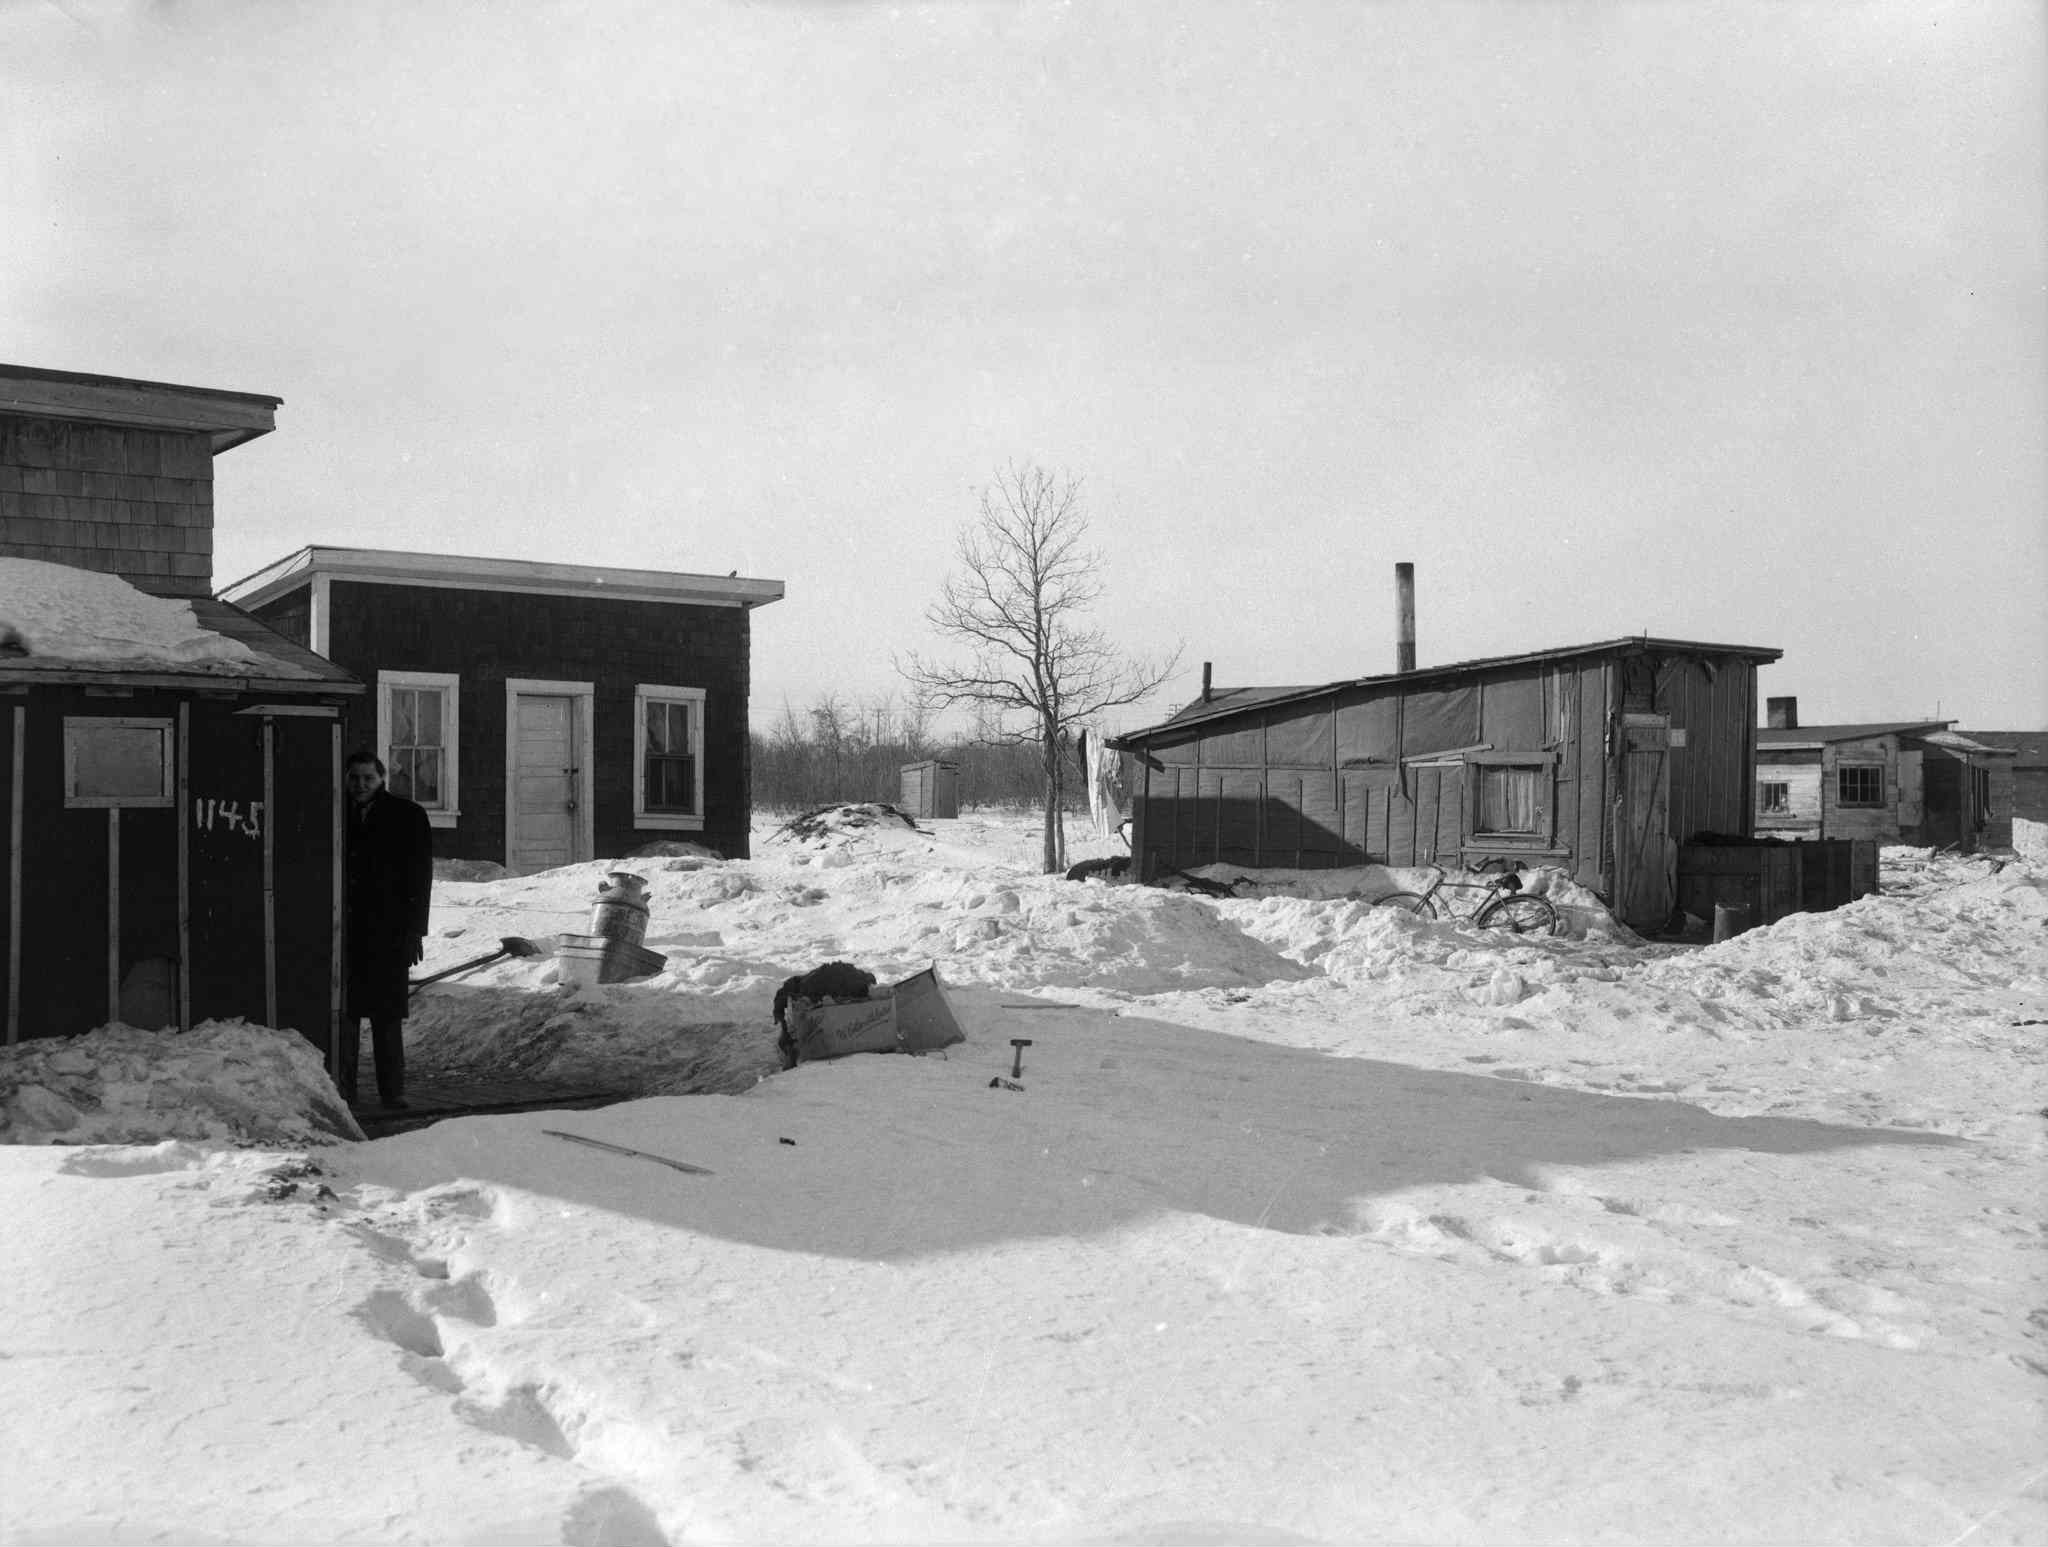 A news reporter stands outside the home of James and Mary Parisien at 1145 Weatherdon Avenue in 1959. Despite their simple construction, the shanties displayed some variations in status. The wooden shingle siding of the Parisien residence distinguishes it from the tar-paper cladding of some of its neighbours. Beside 1145 Weatherdon is a home with painted trim and sashes.